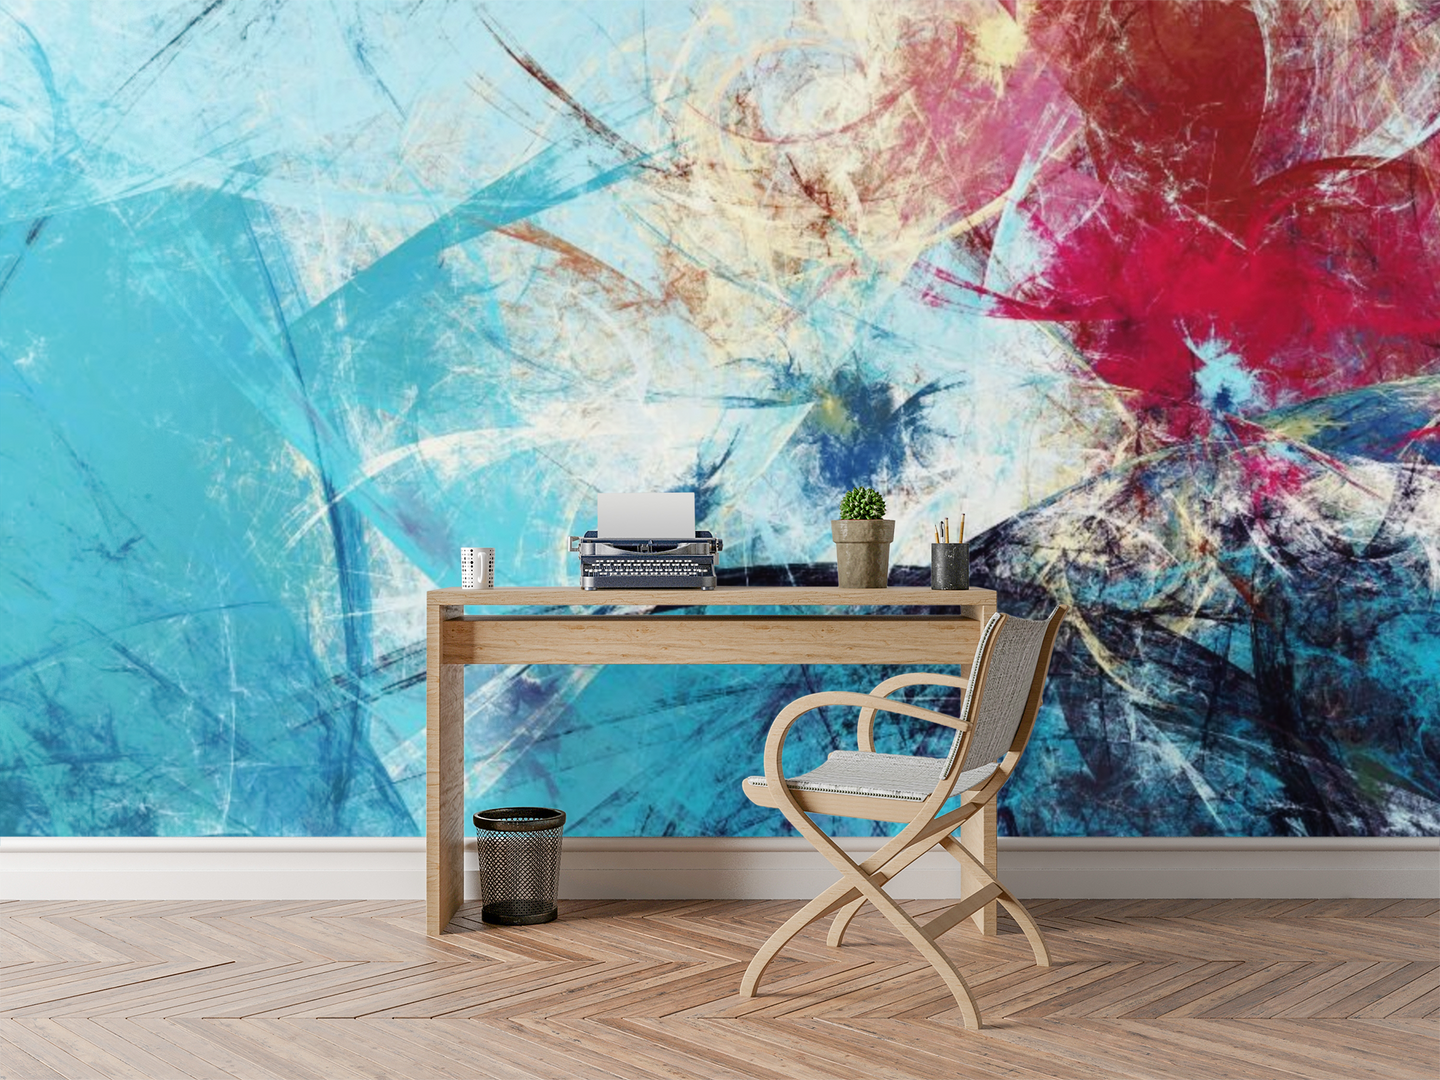 Paint Splash  - 0348 - Wall Murals Printing - wall art